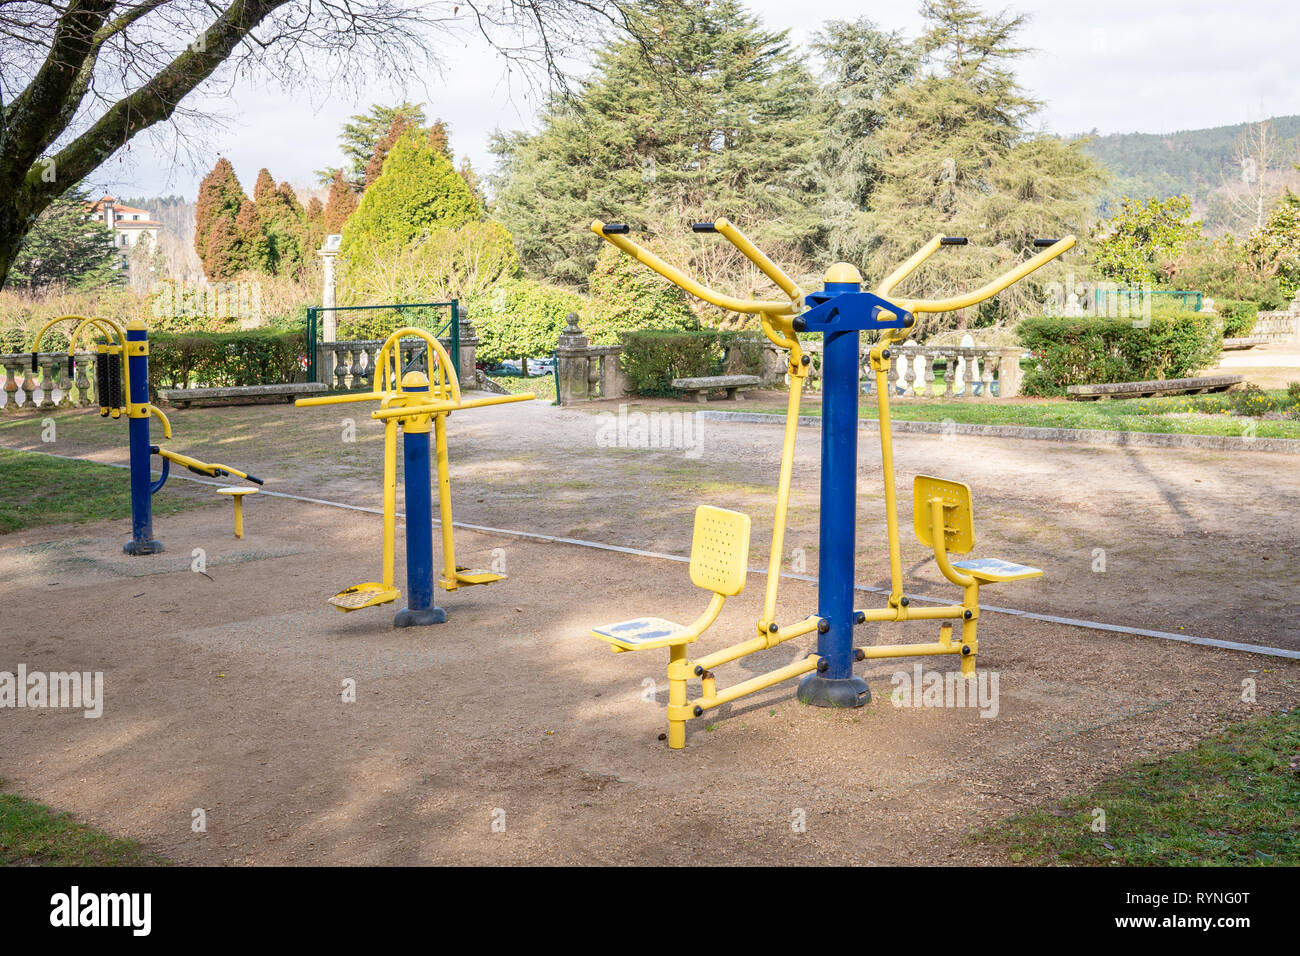 Outdoor exercise machines at public park. - Stock Image